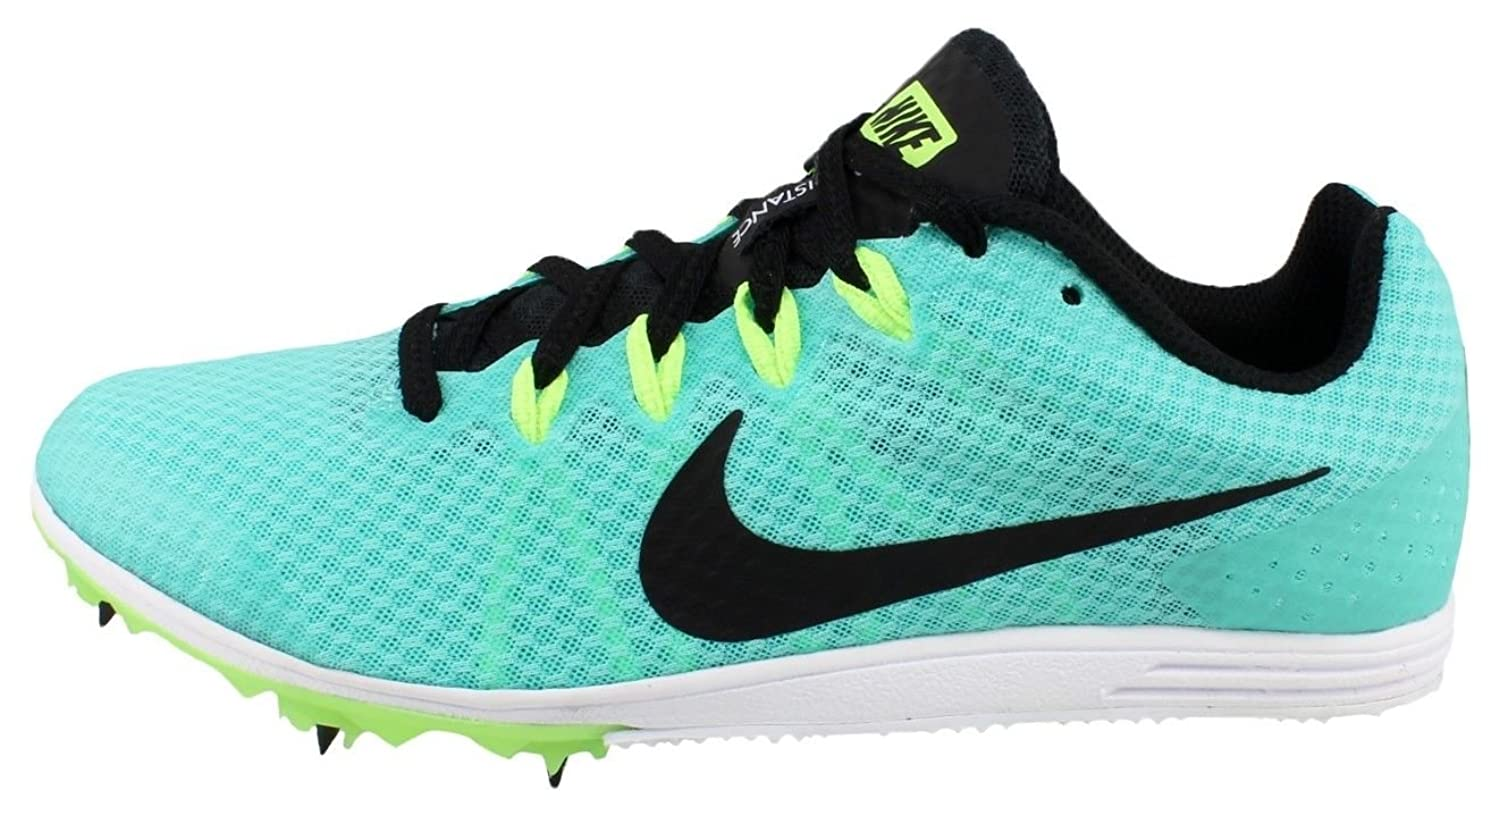 Amazon.com: Nike Women's Zoom Rival D 9 Track and Field Spikes 806560-303  Size 11 Teal/Black: Clothing